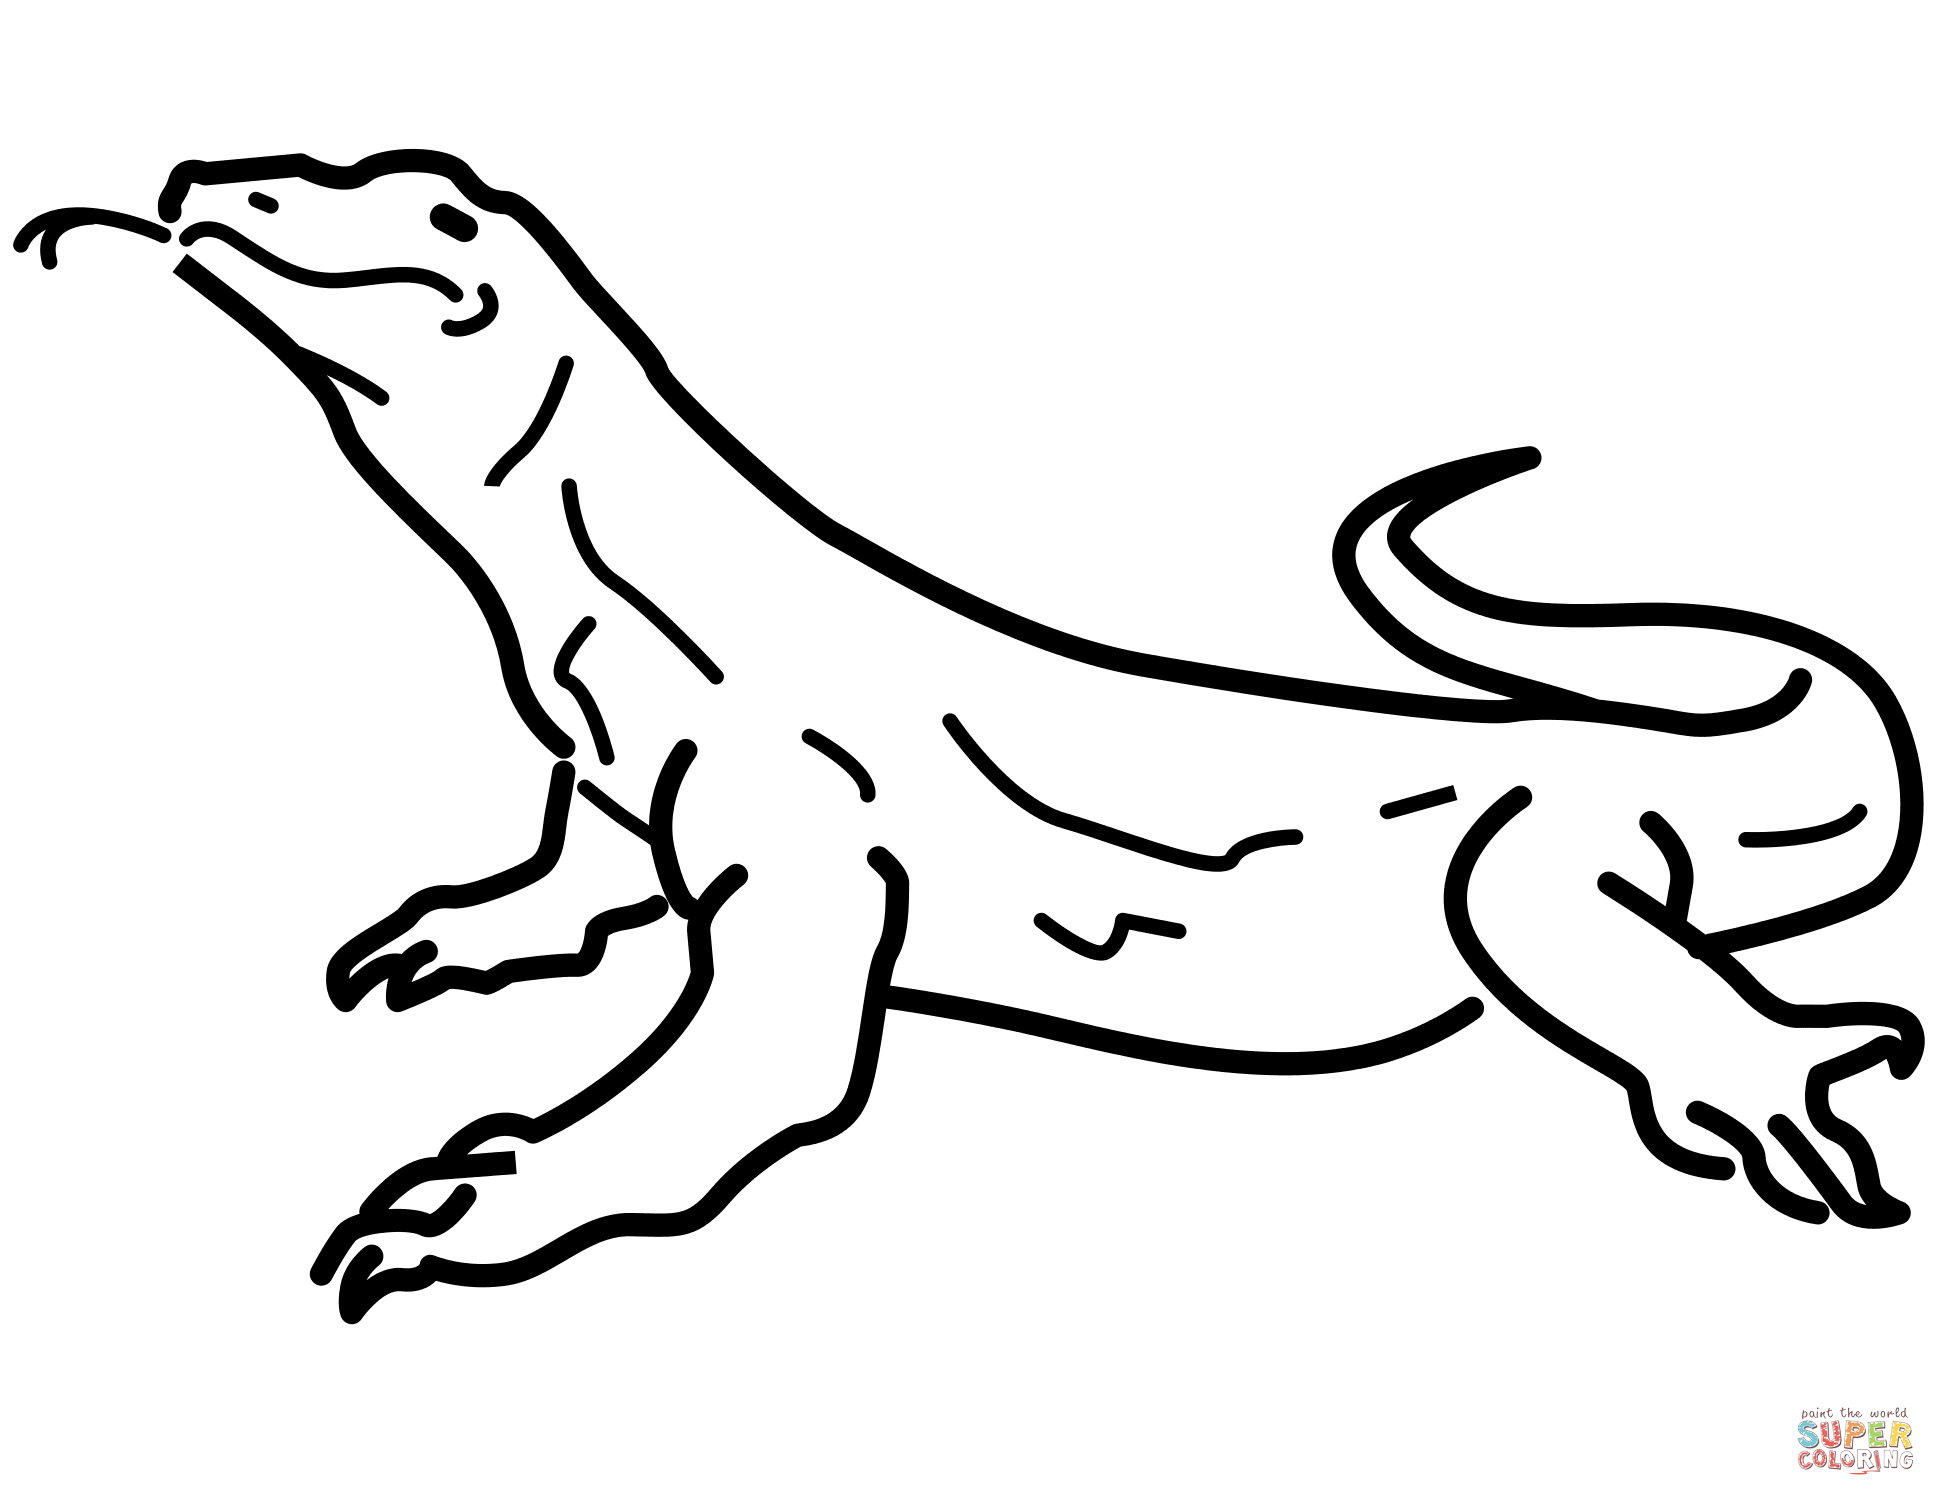 Simple Lizard Drawing at GetDrawings.com | Free for personal use ...